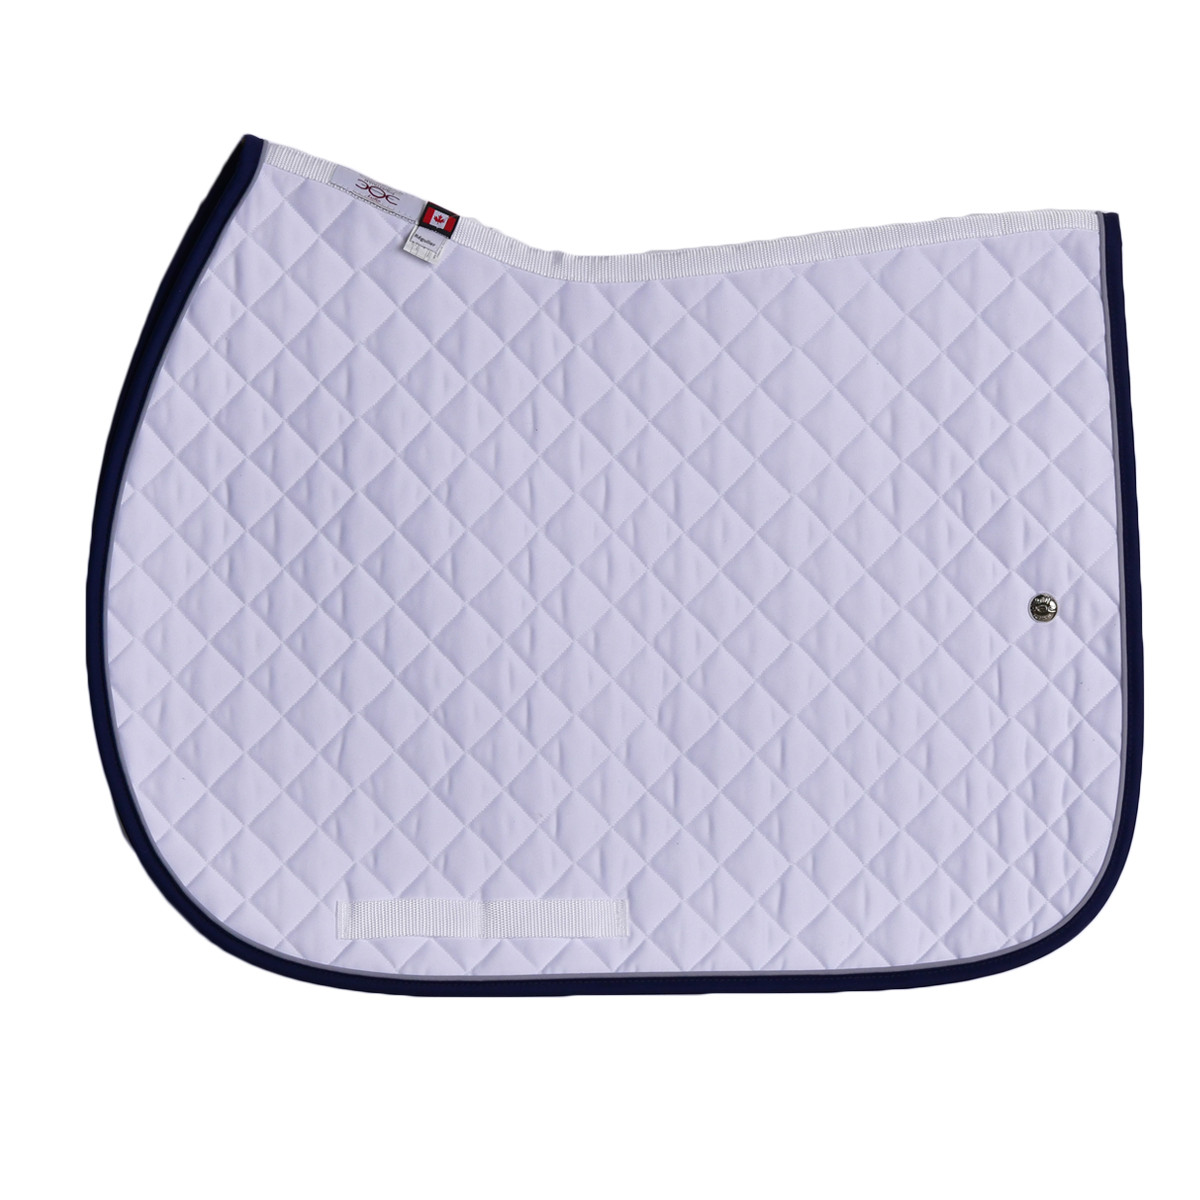 Ogilvy Jump Profile Pad - White / Light Grey / Navy Blue